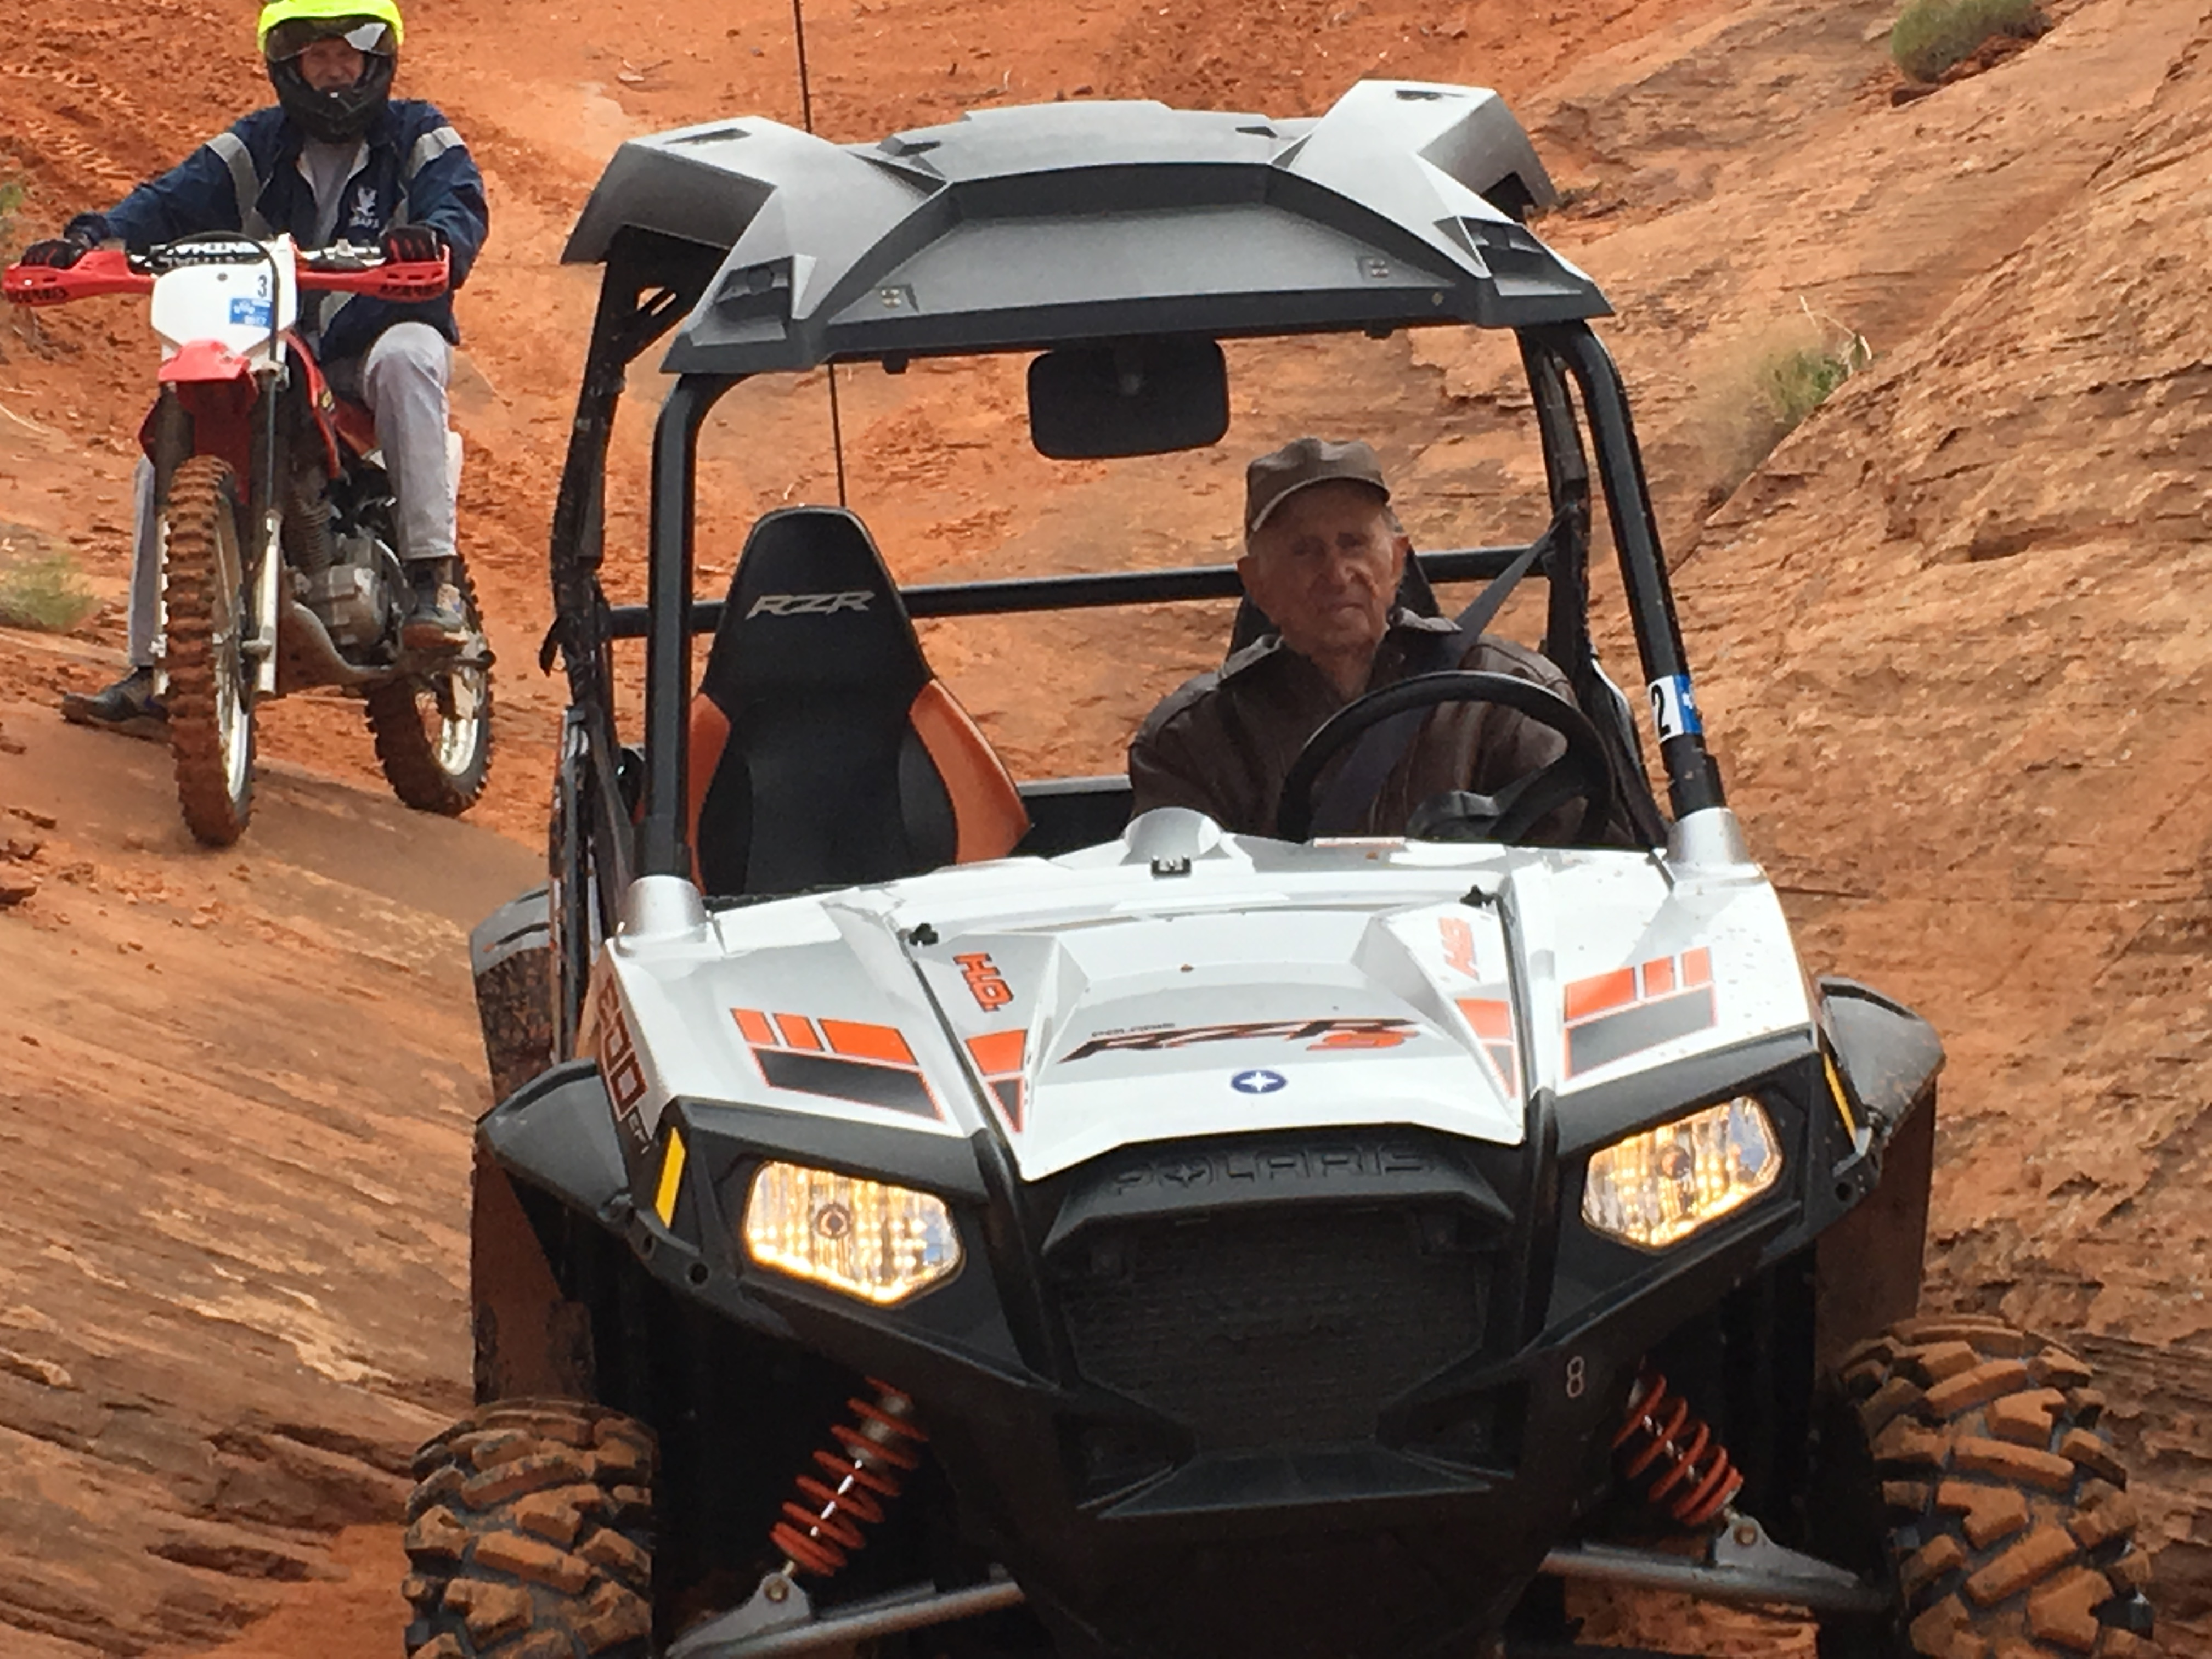 Centenarian Carl Freeman takes the wheel of an off-road vehicle during a 2018 excursion to Utah's sand dunes.